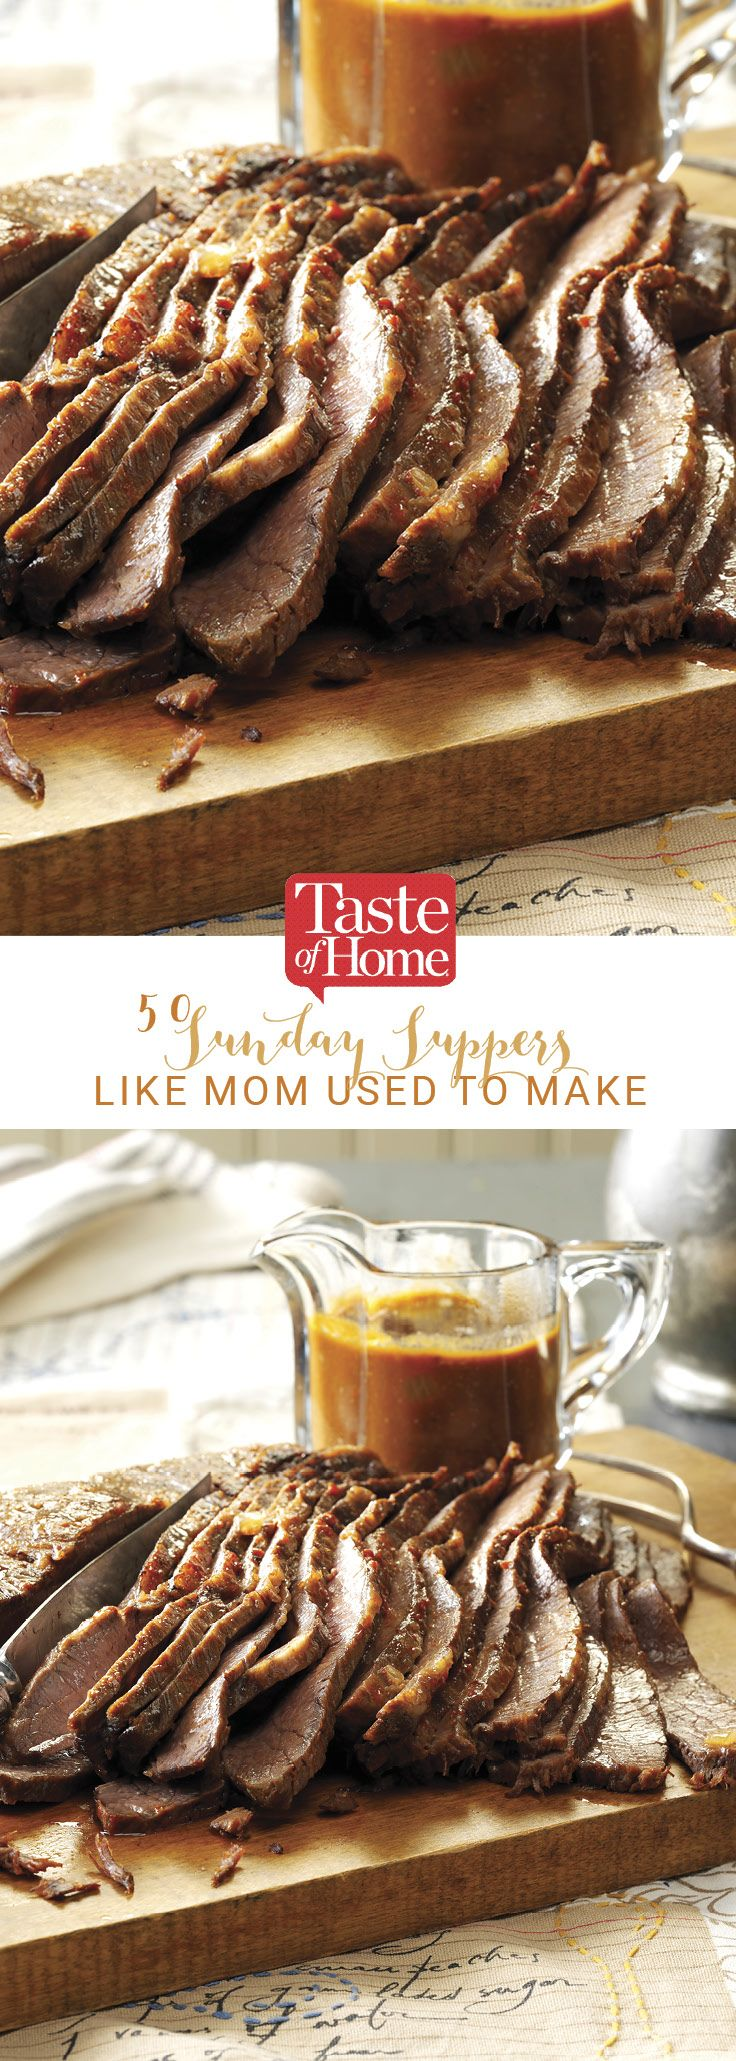 50 Sunday Suppers Like Mom Used to Make (from Taste of Home)